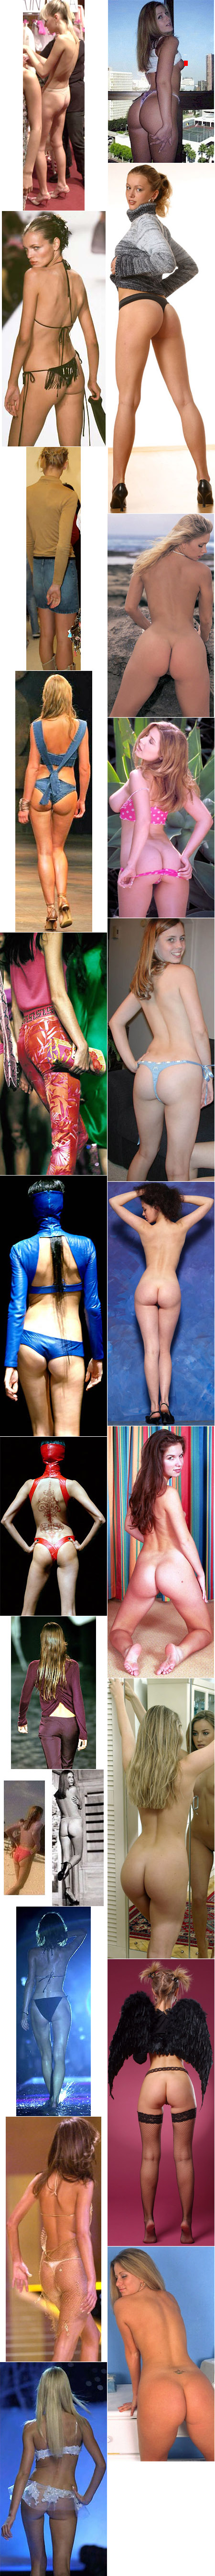 The backside of high-fashion models contrasted with that of feminine glamour models.